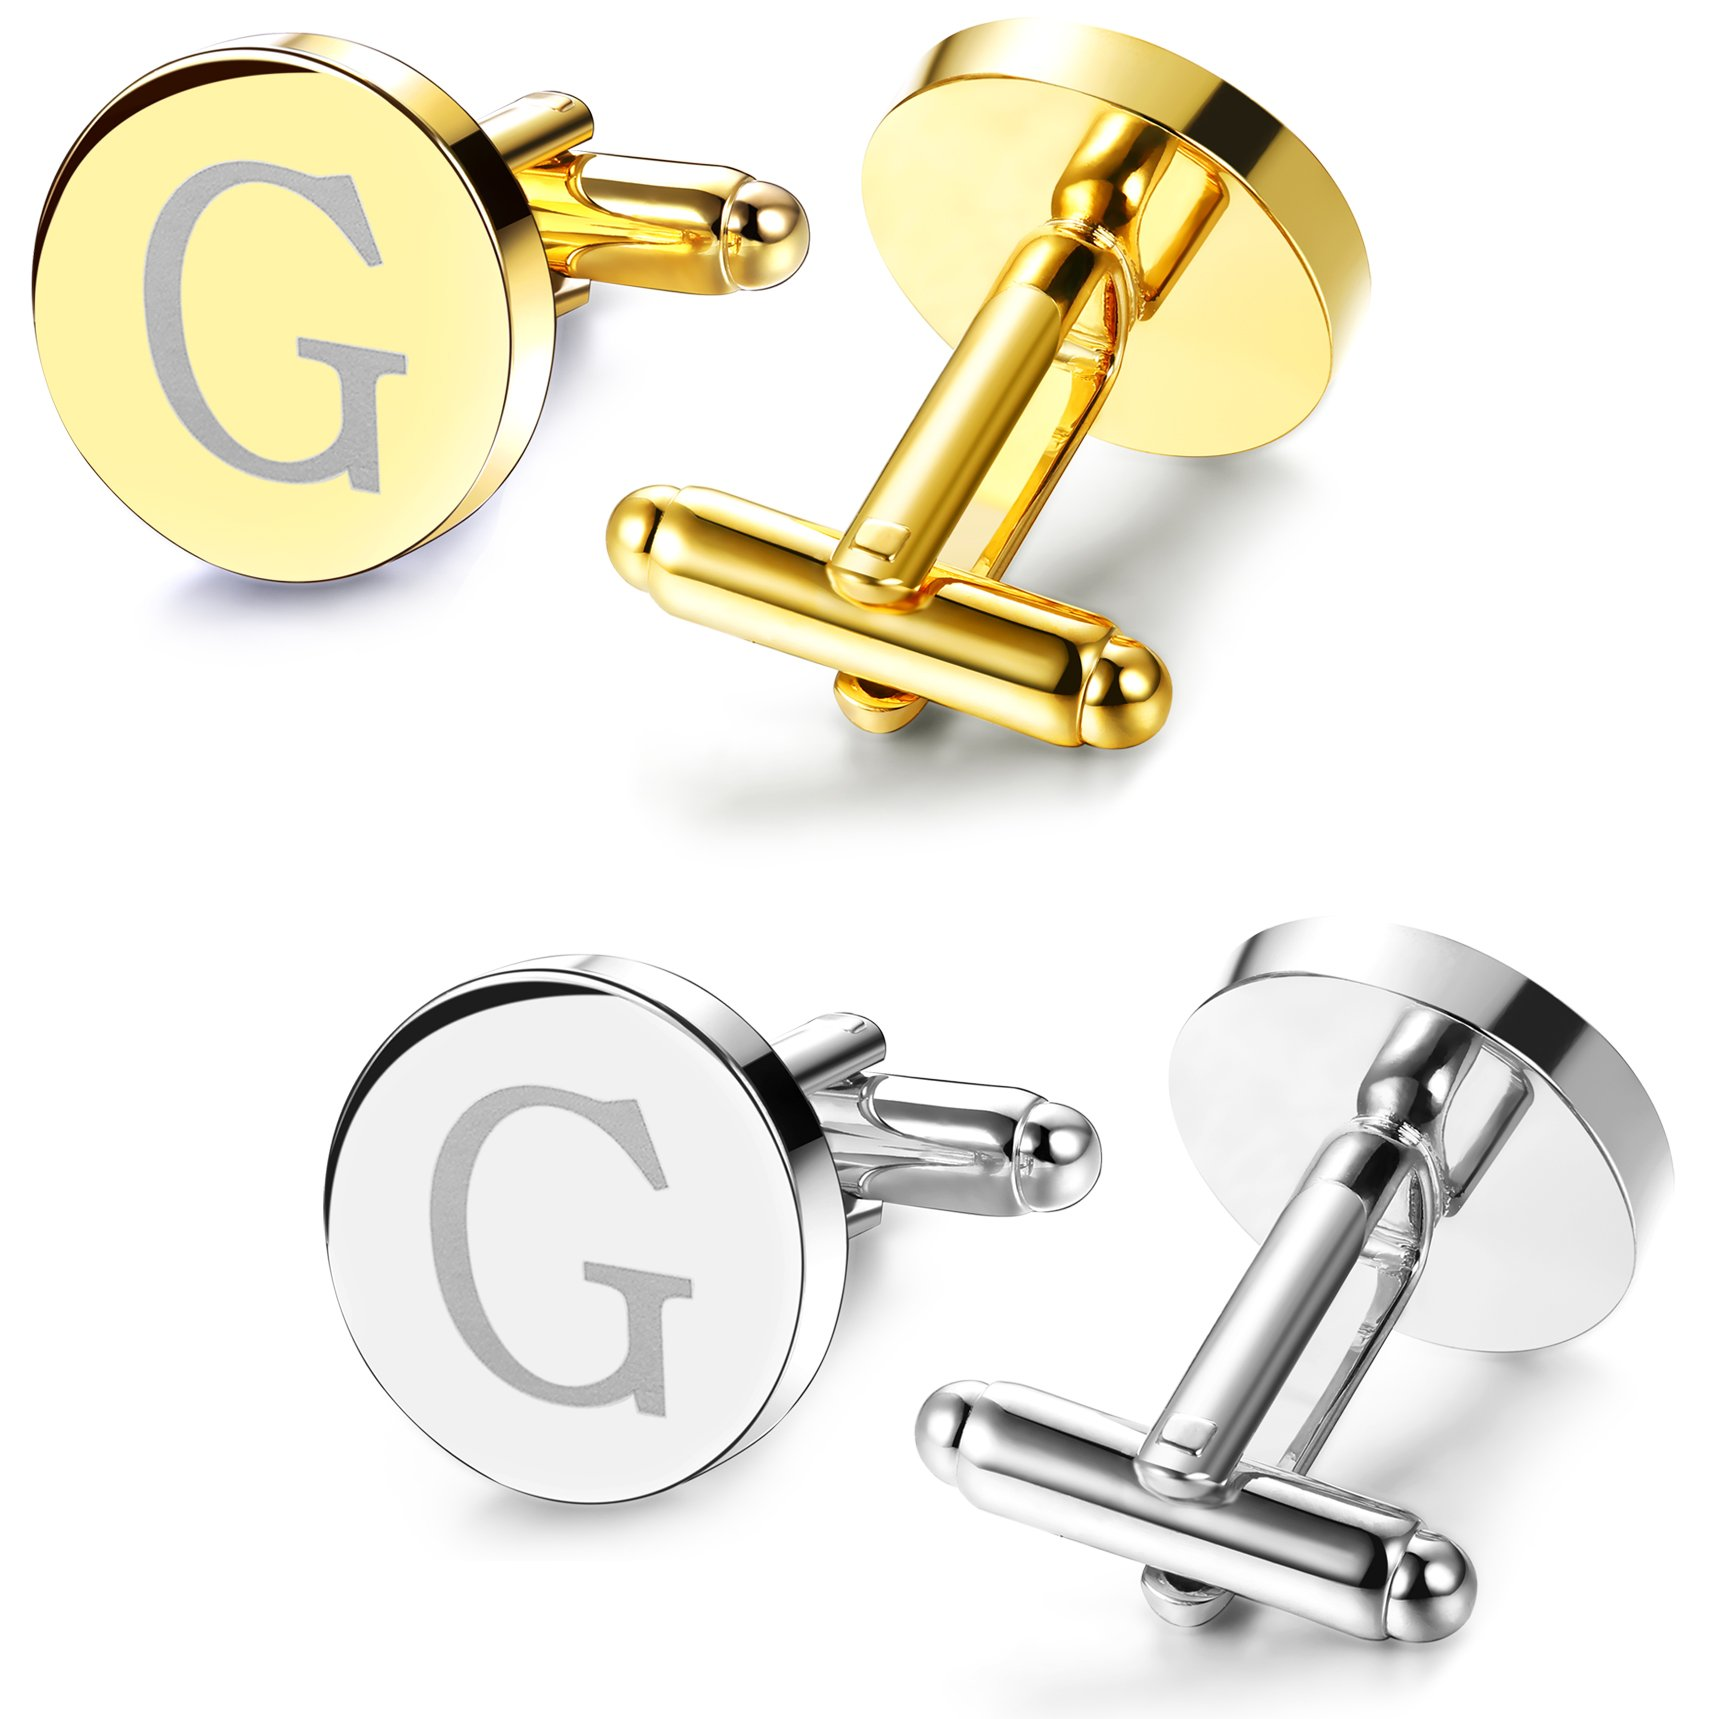 JOERICA 2 Pairs Mens Cufflinks Initial Engraved Cufflink Shirt Business Weeding 26 Letters G